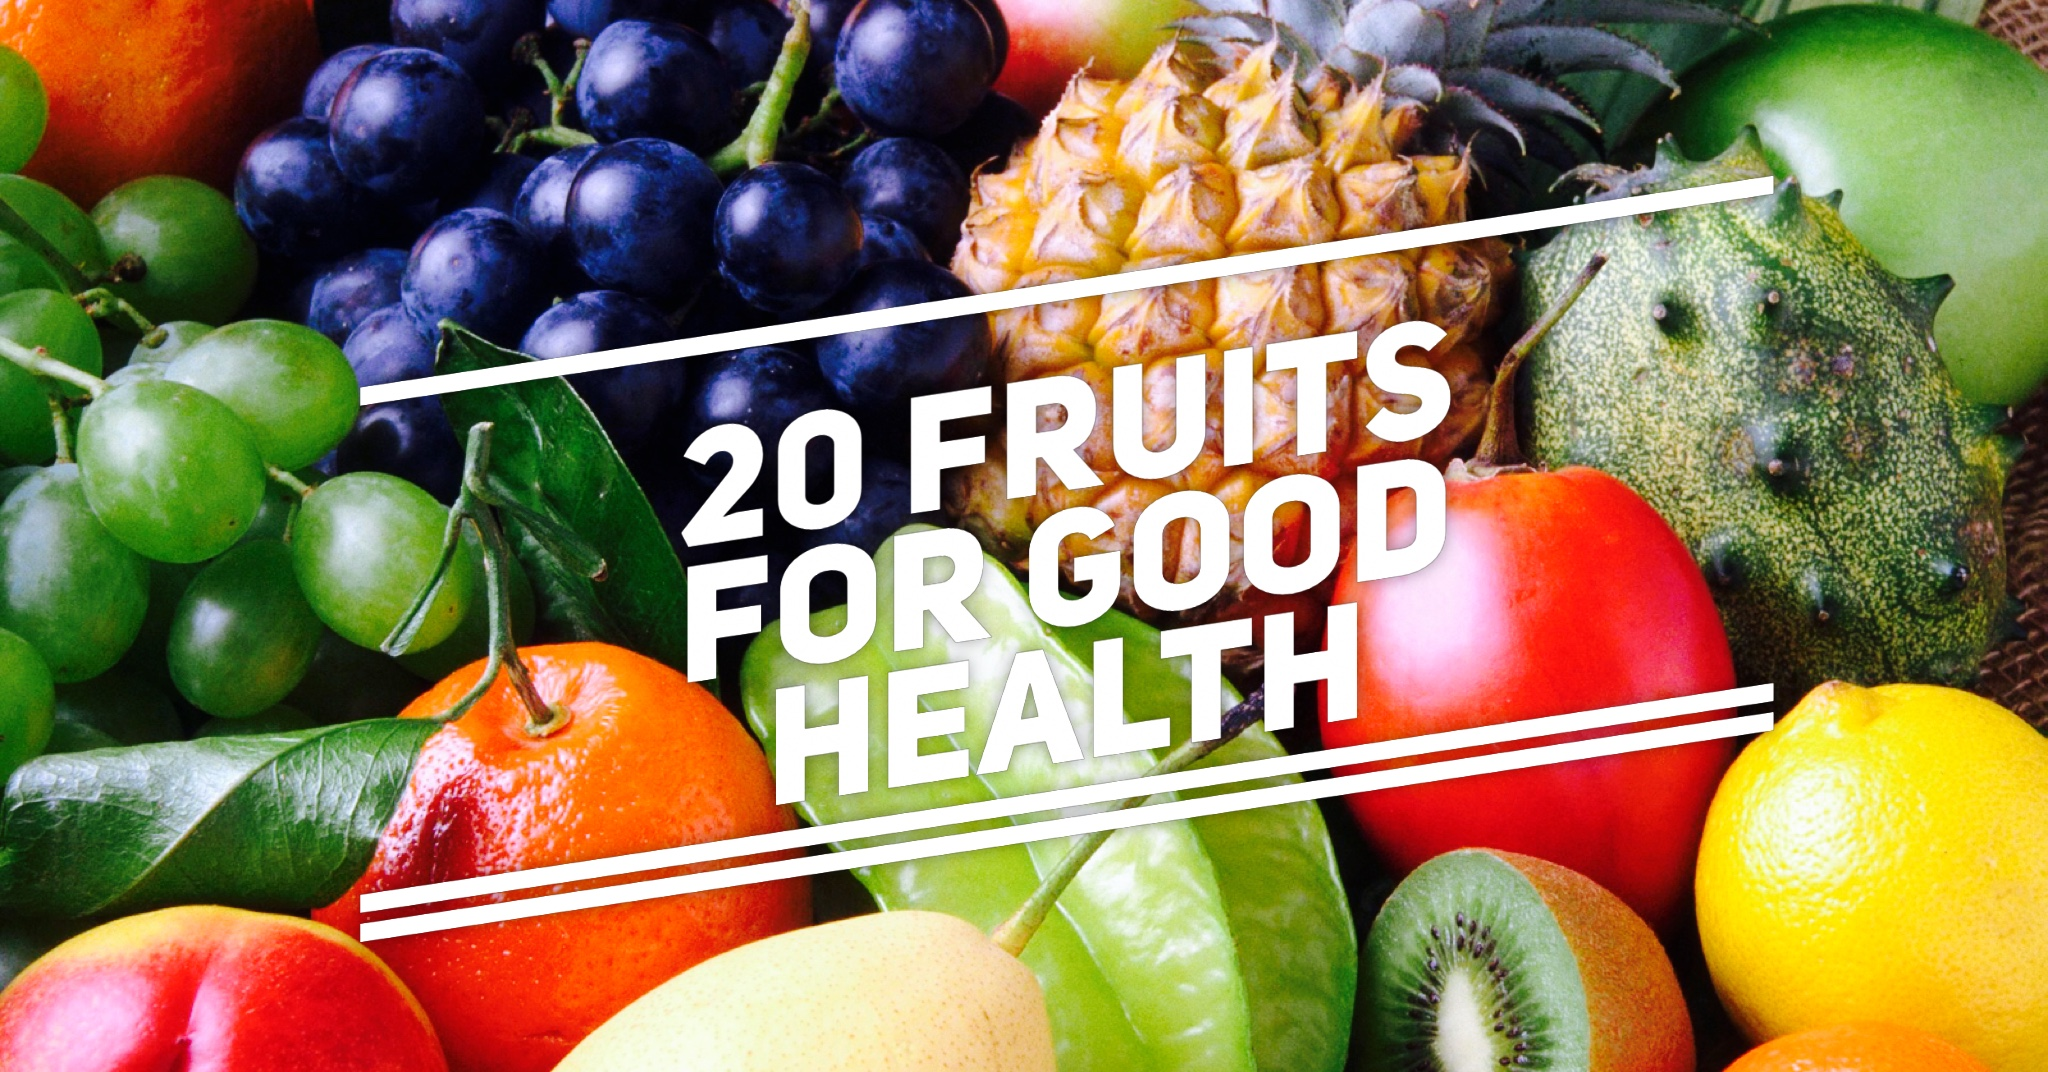 20 Fruits for Good Health Cover